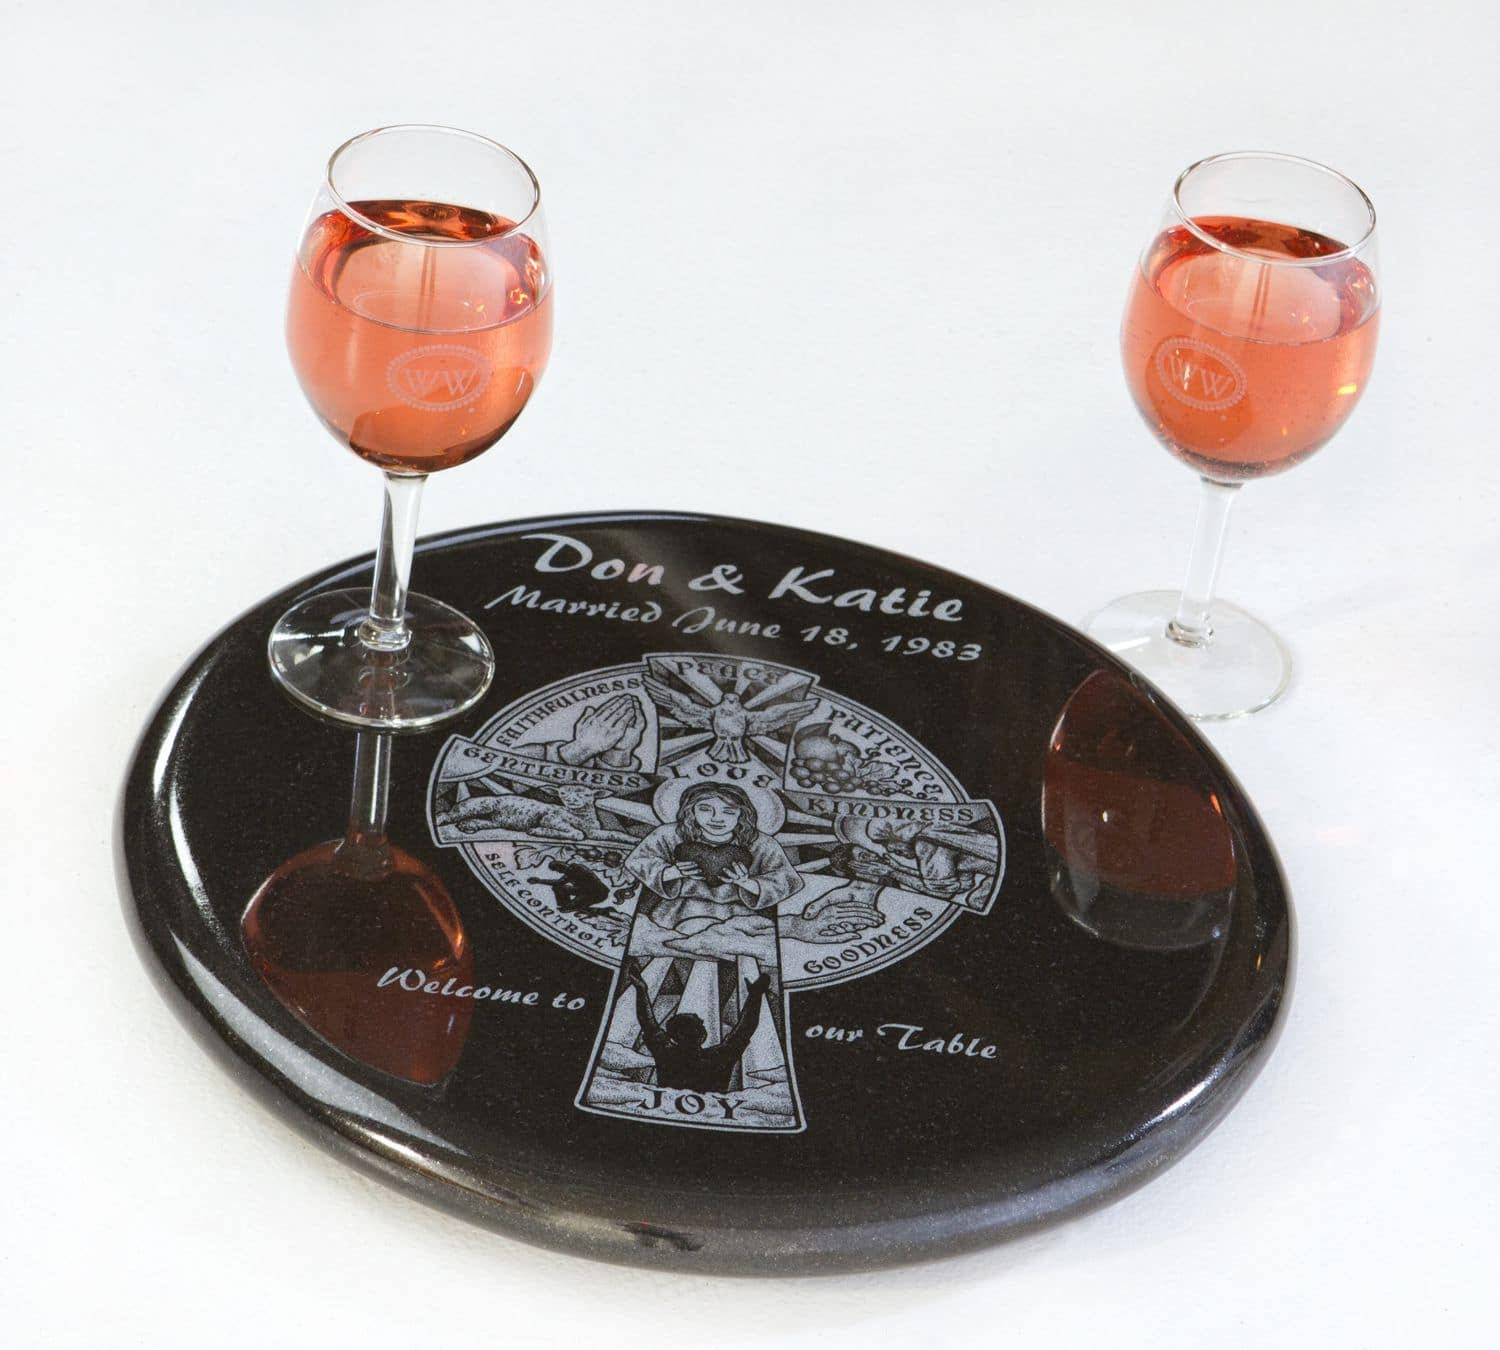 Gifts & Home Granite Lazy Susan